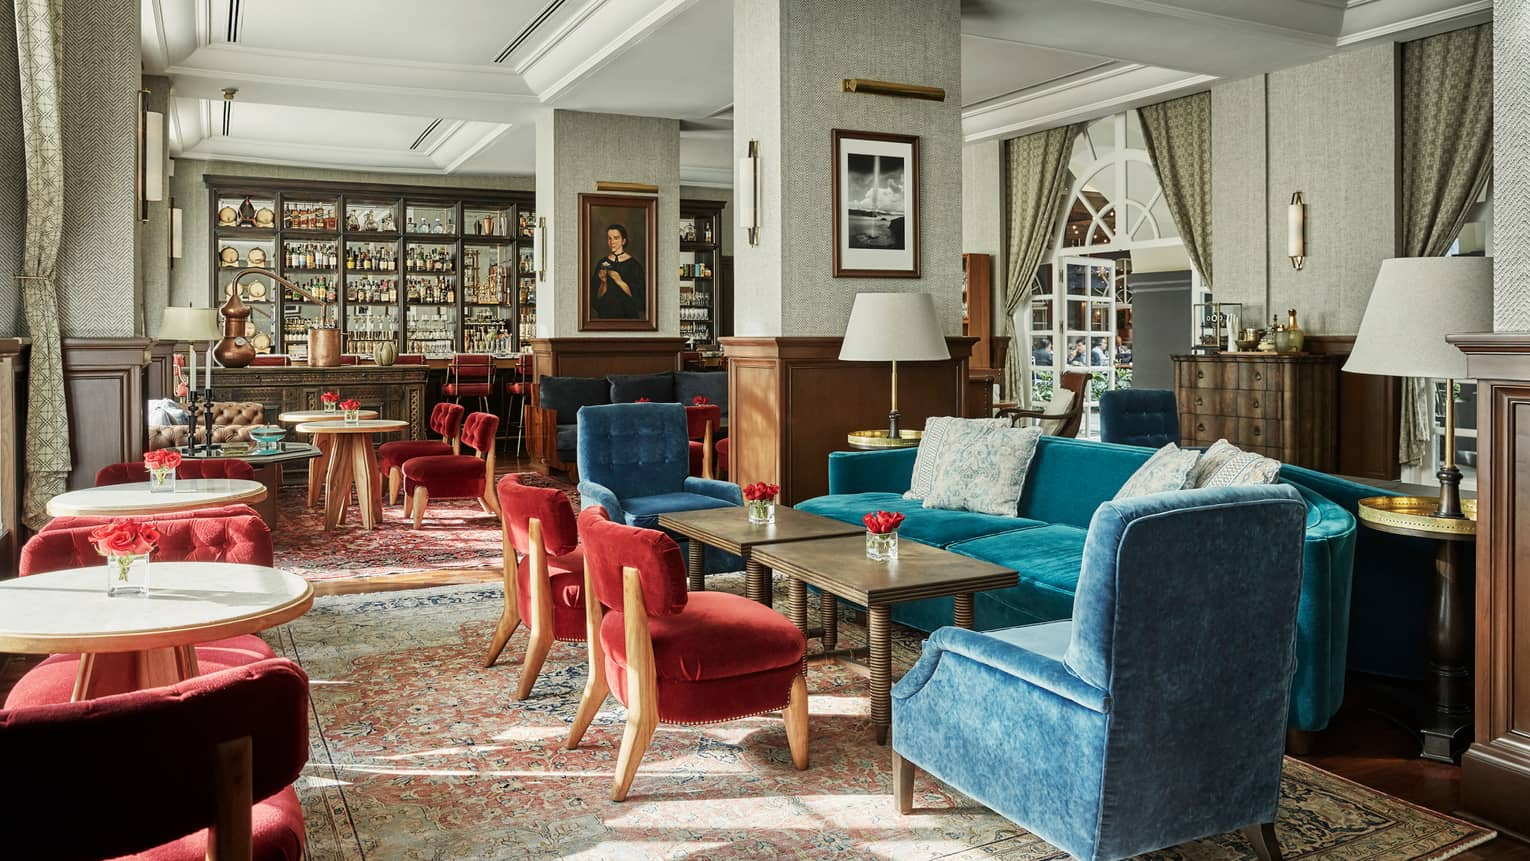 Fifty Mils dining room, red, blue velvet chairs and tables, arched windows, bar, oil portrait